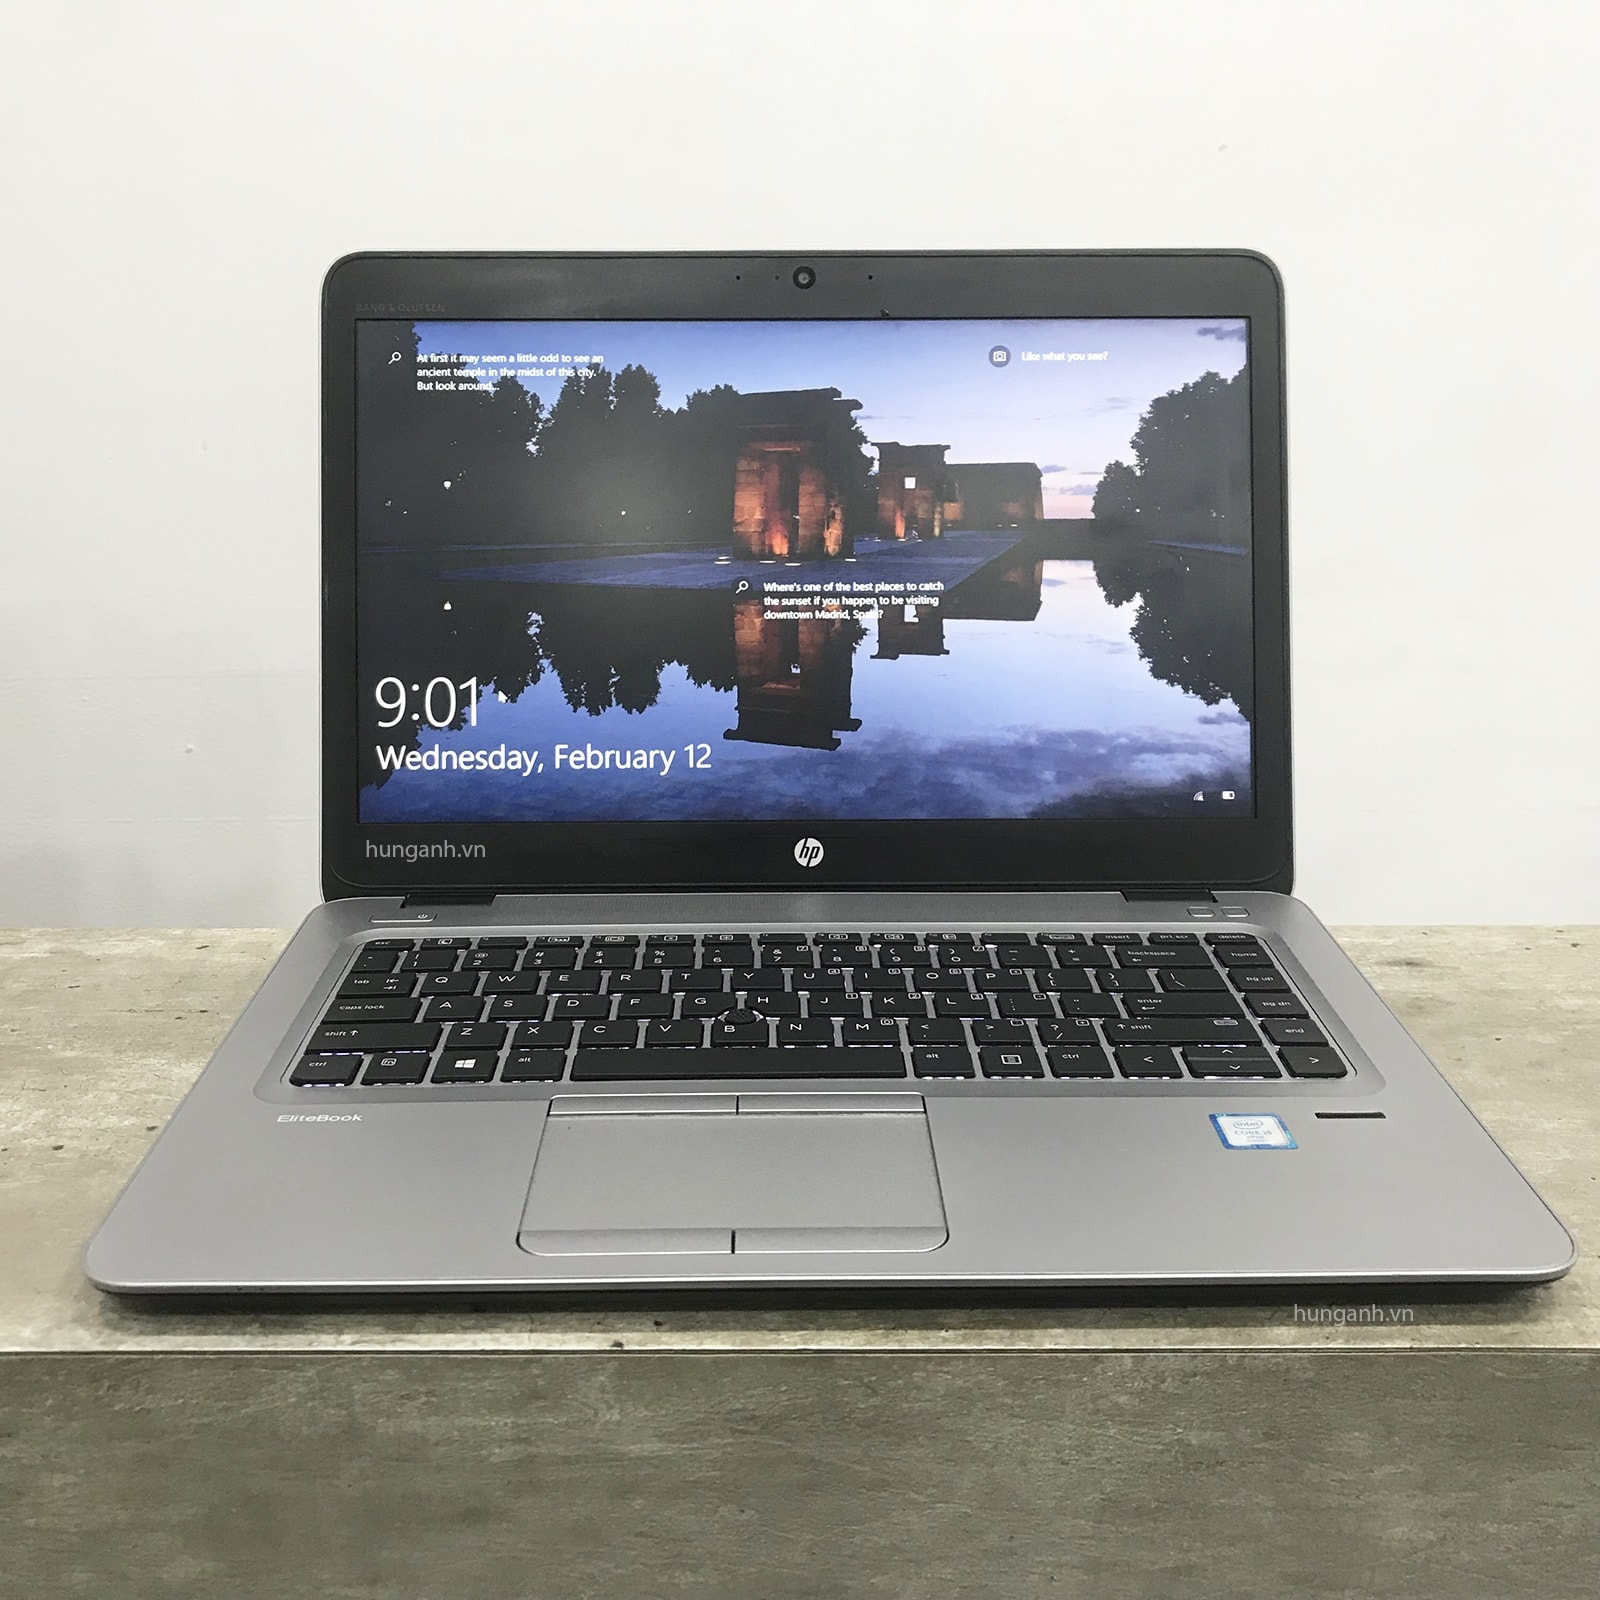 HP Elitebook 840 G3 Core i5 6300U, 8GB, 256GB, 14.0 Full HD, Card on